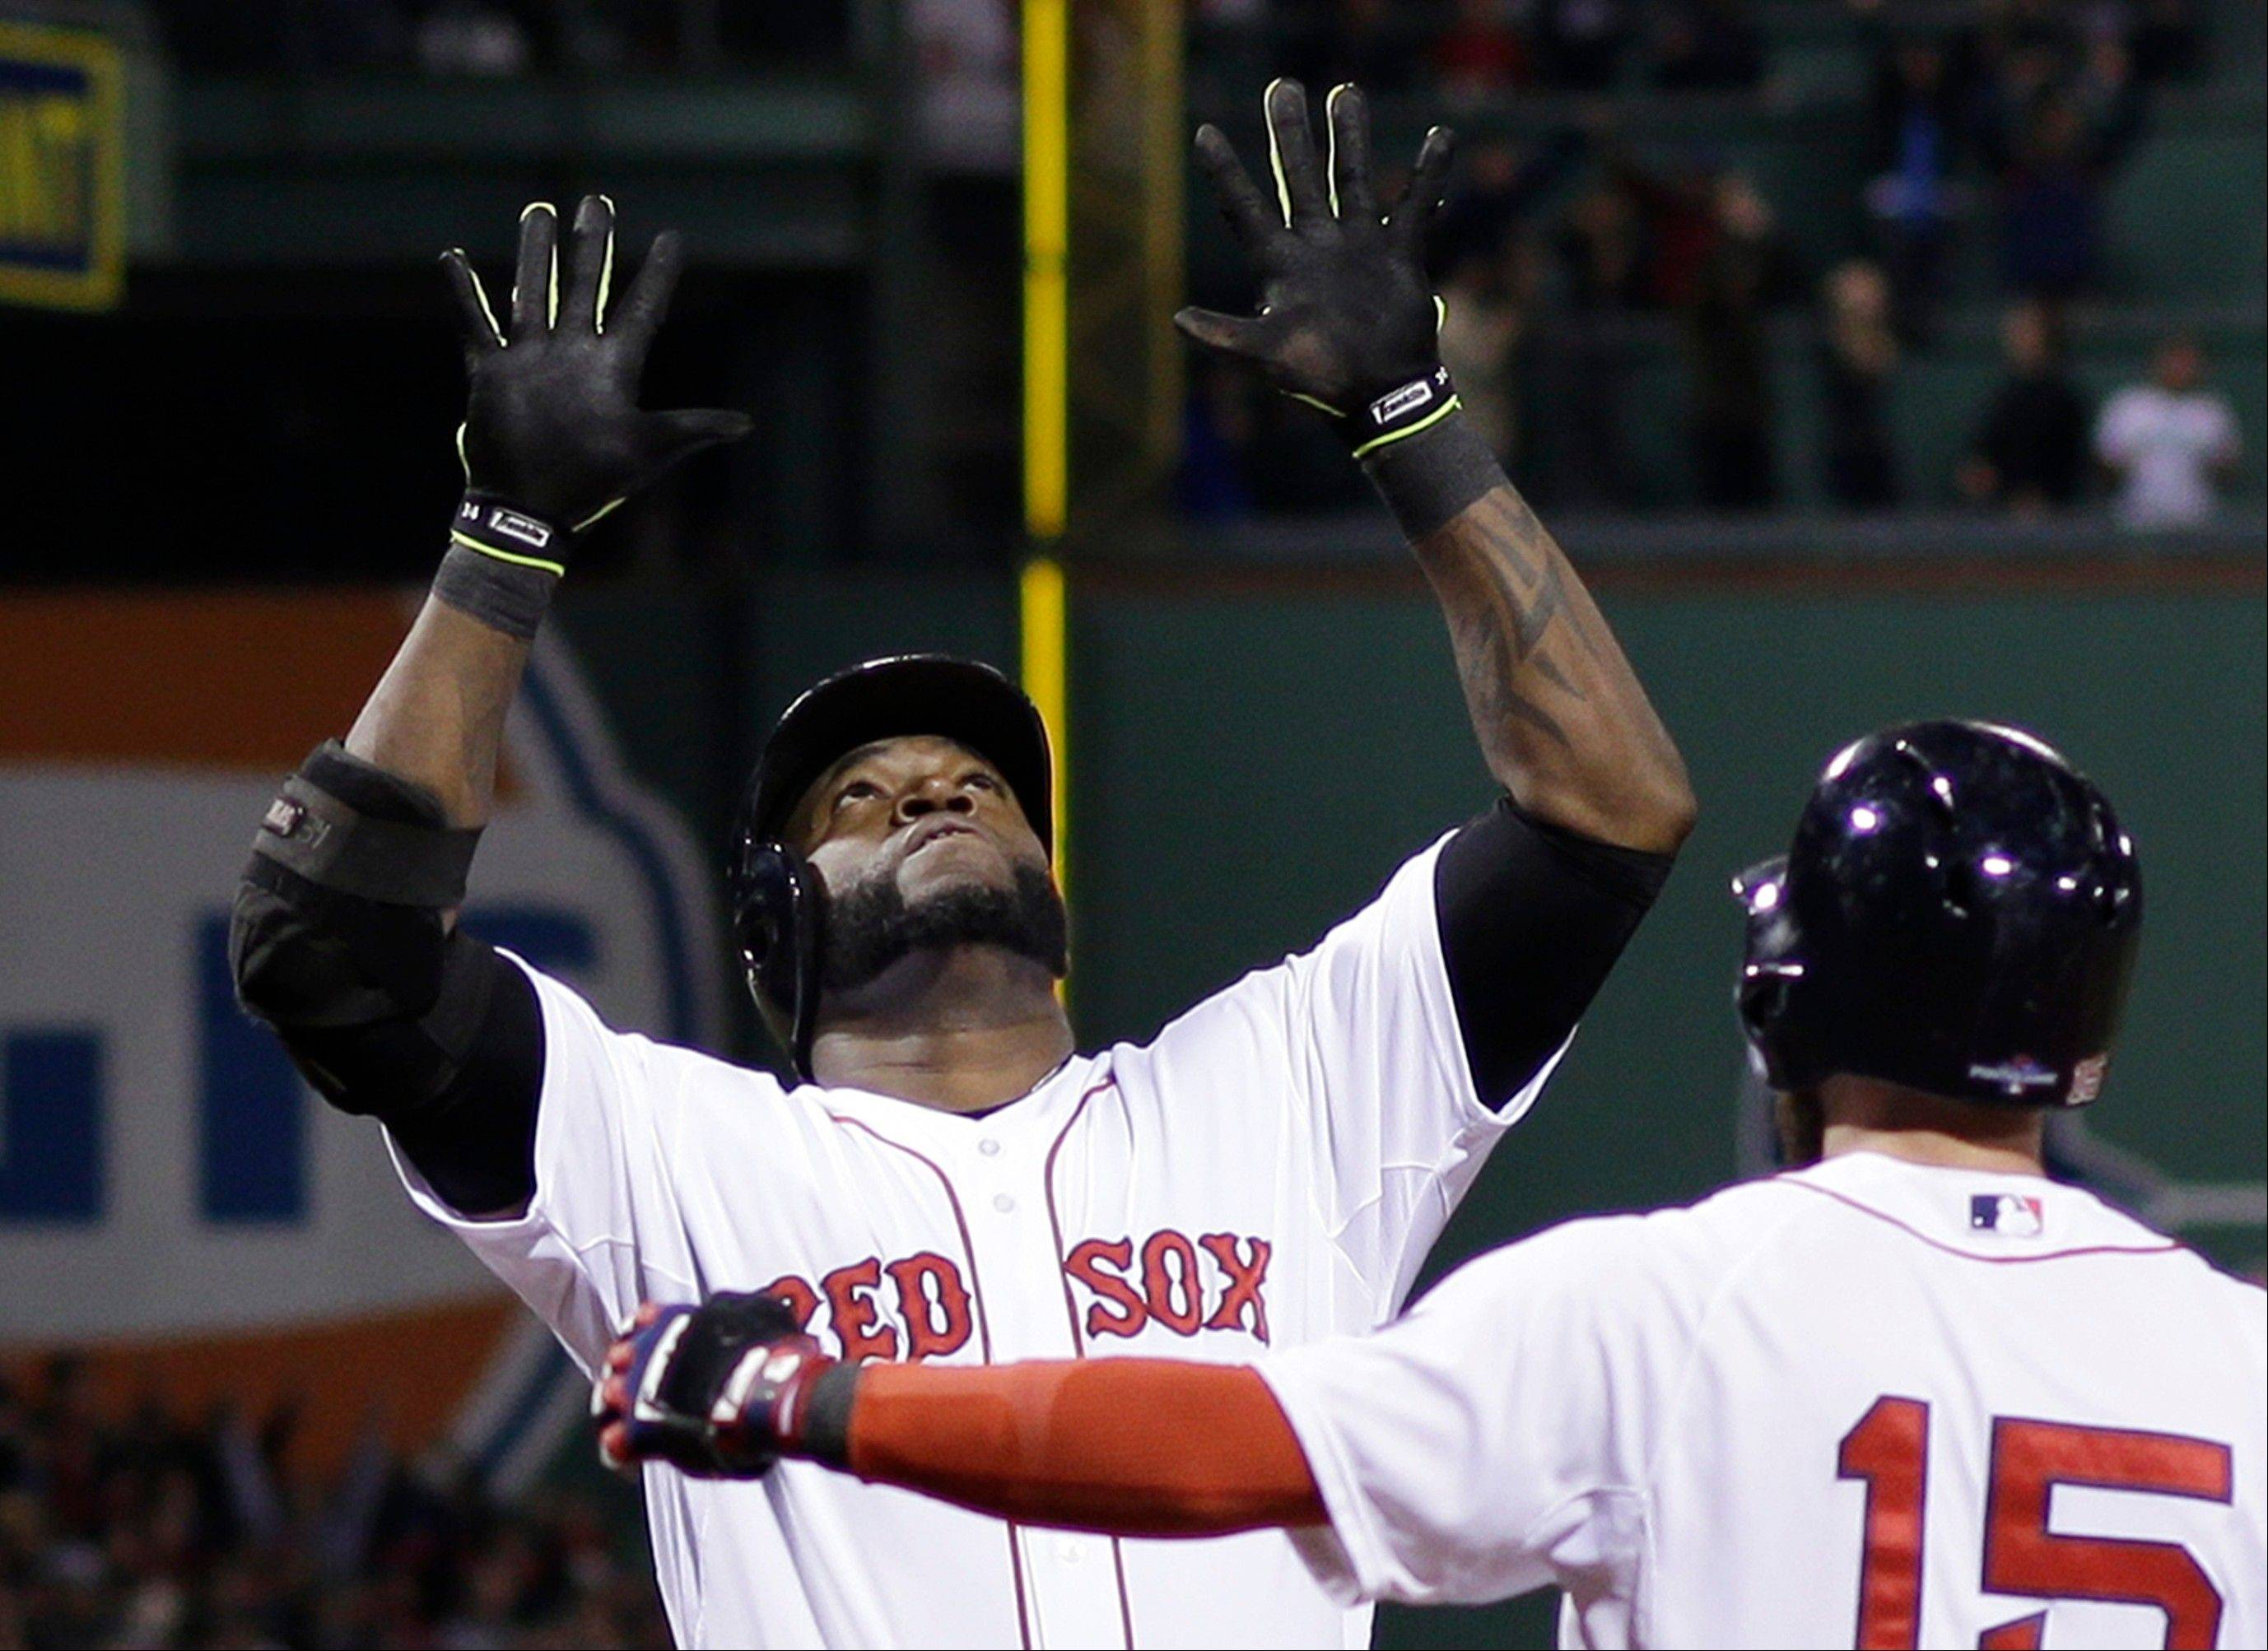 Boston Red Sox's David Ortiz celebrates with Dustin Pedroia after hitting a grand slam home run in the eighth inning during Game 2 of the American League baseball championship series against the Detro